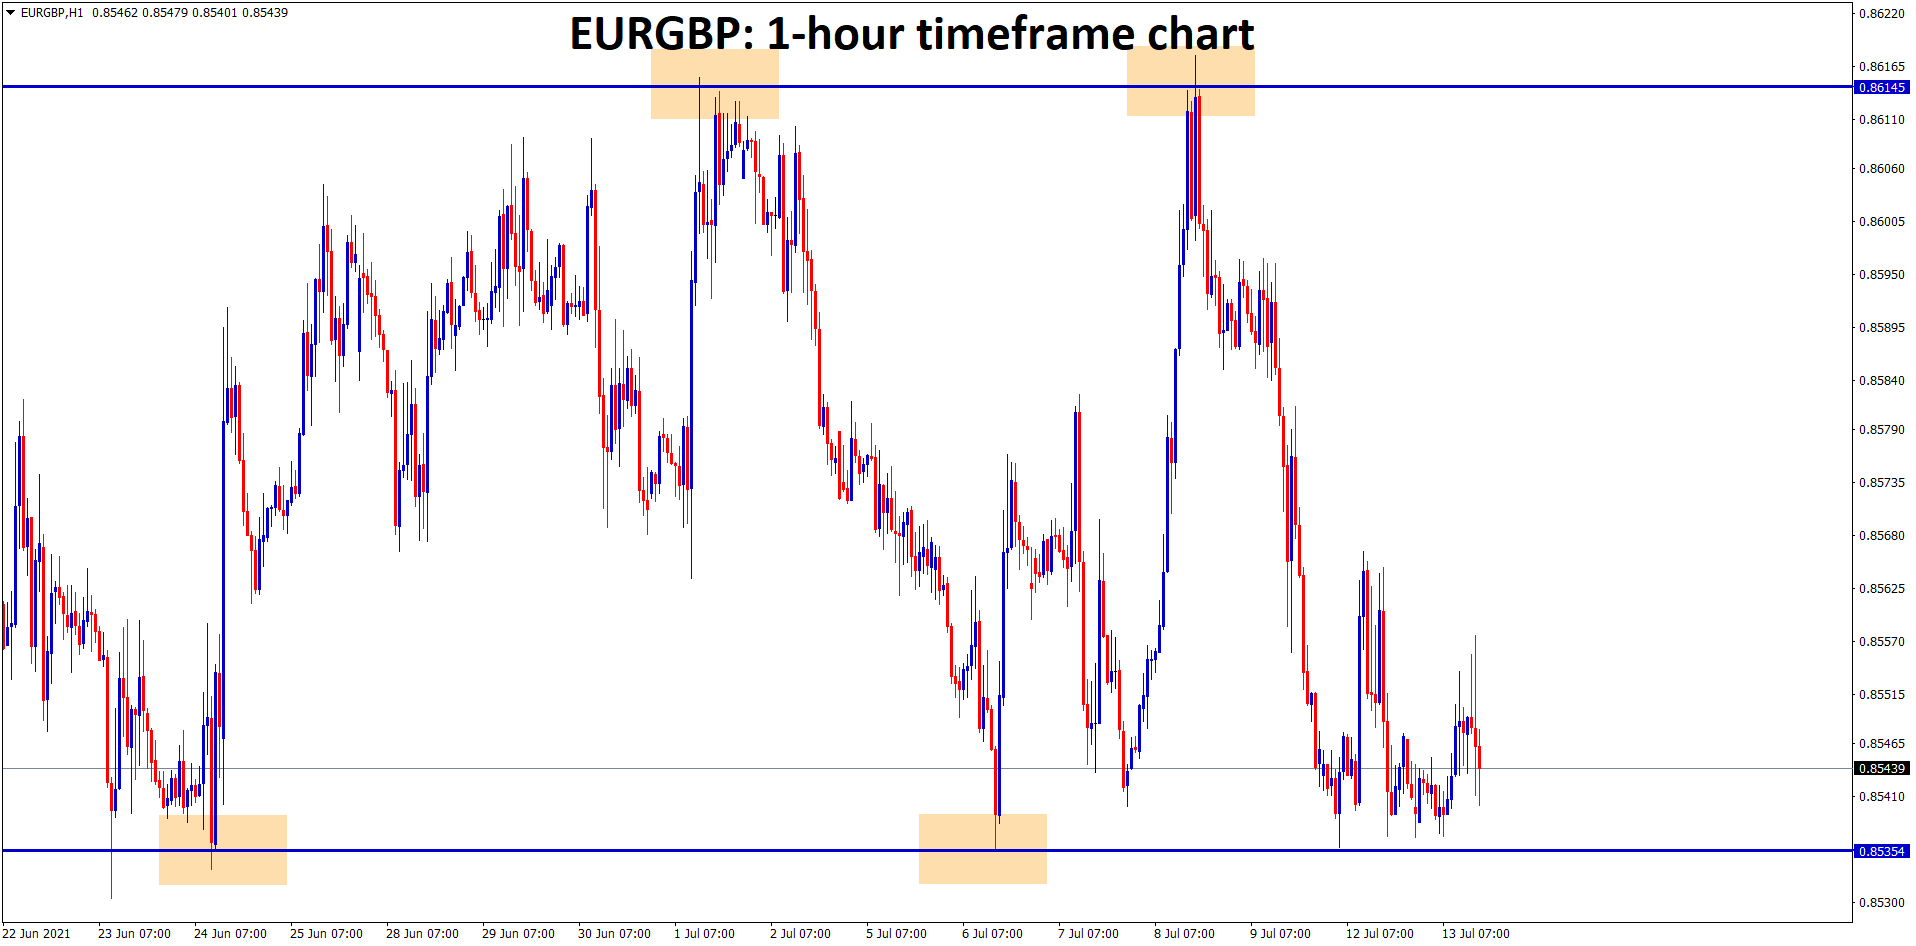 EURGBP is moving up and down between the resistance and support area.